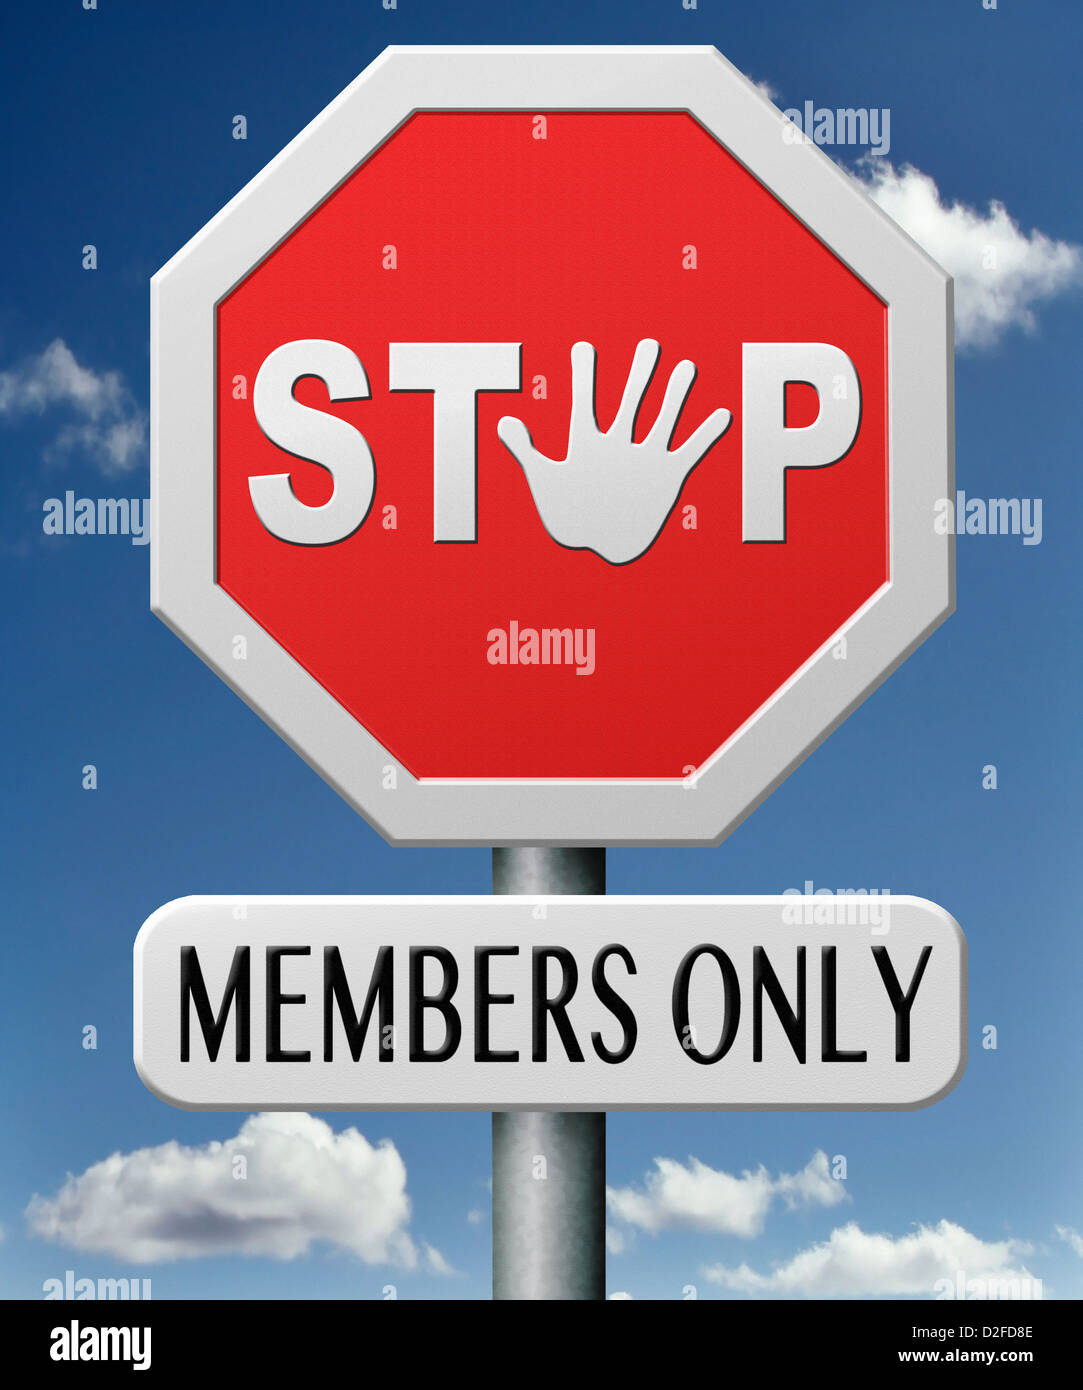 members only restricted VIP area access denied closed community - Stock Image